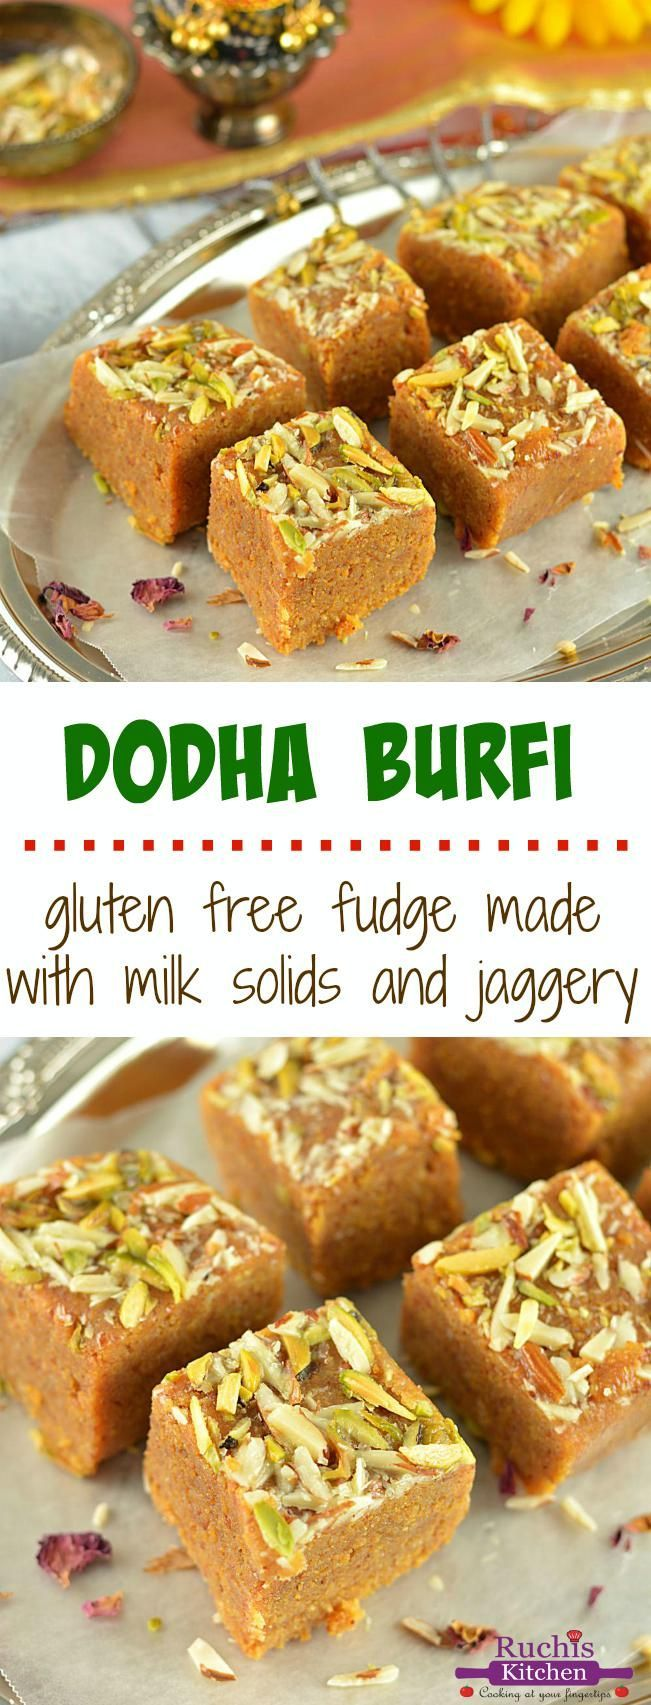 Dodha burfi recipe is a yummy and delicious treat perfect for any special occasion. A Gluten-free traditional Indian sweet made with just 3 simple ingredients!